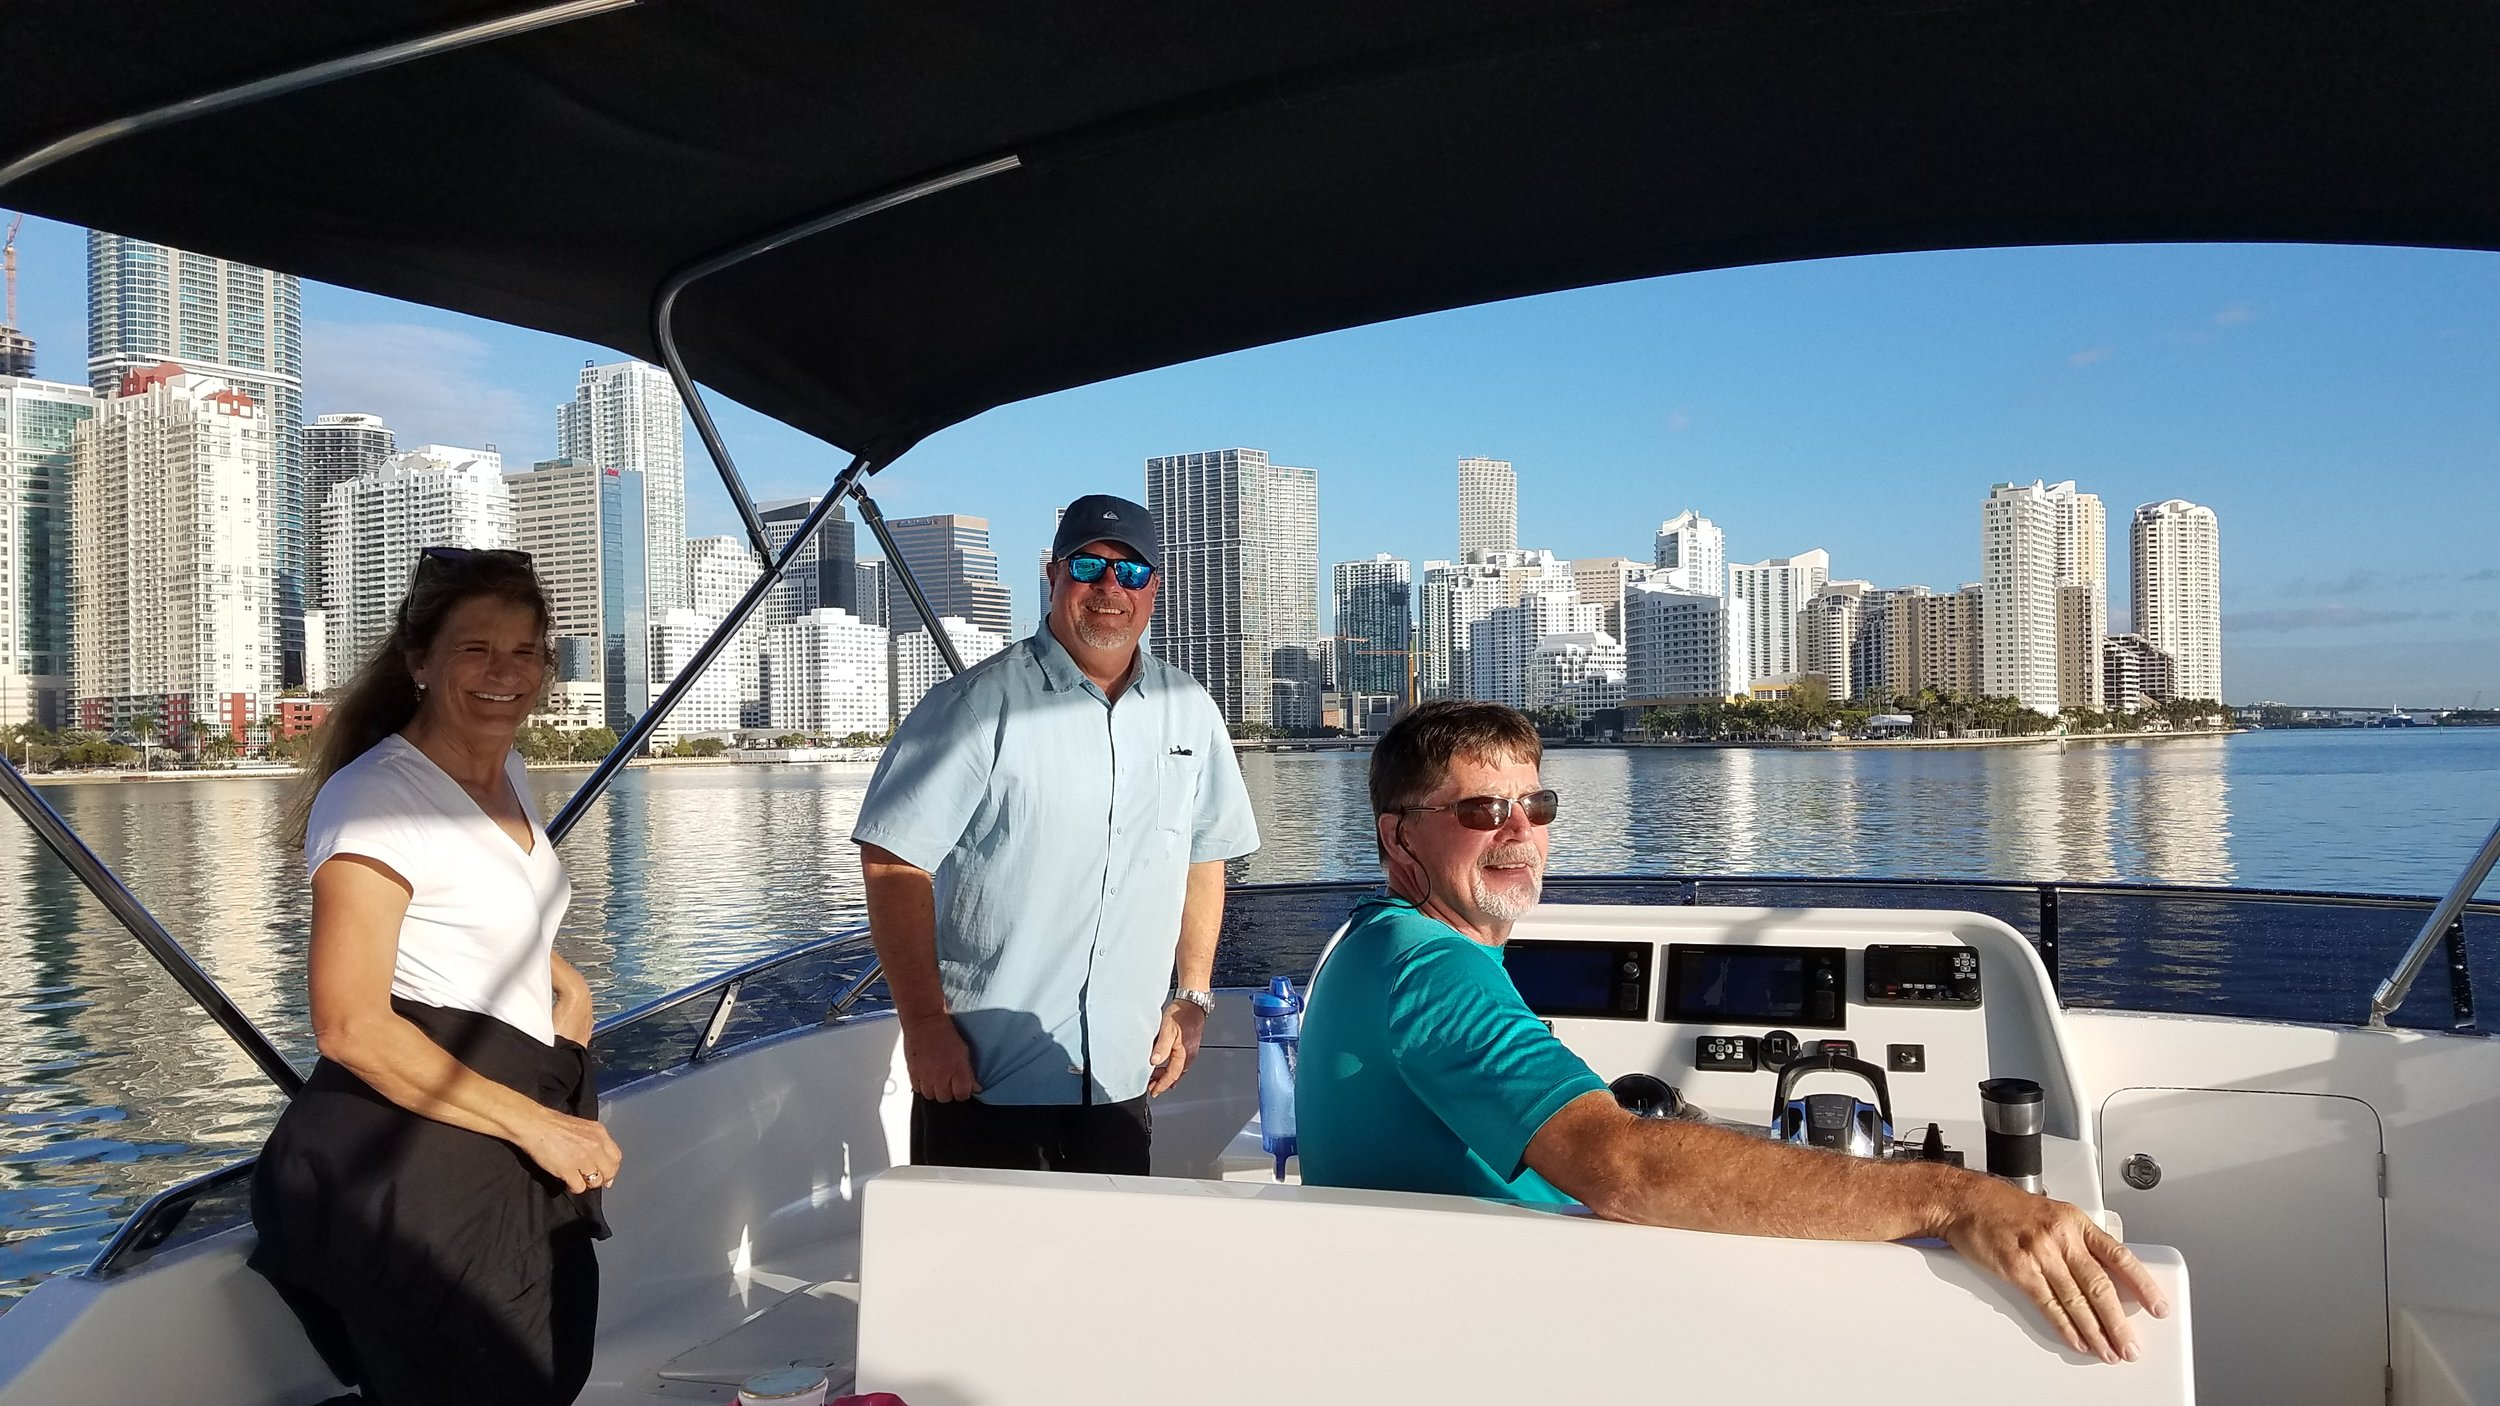 Making our way through the Miami shipping channel